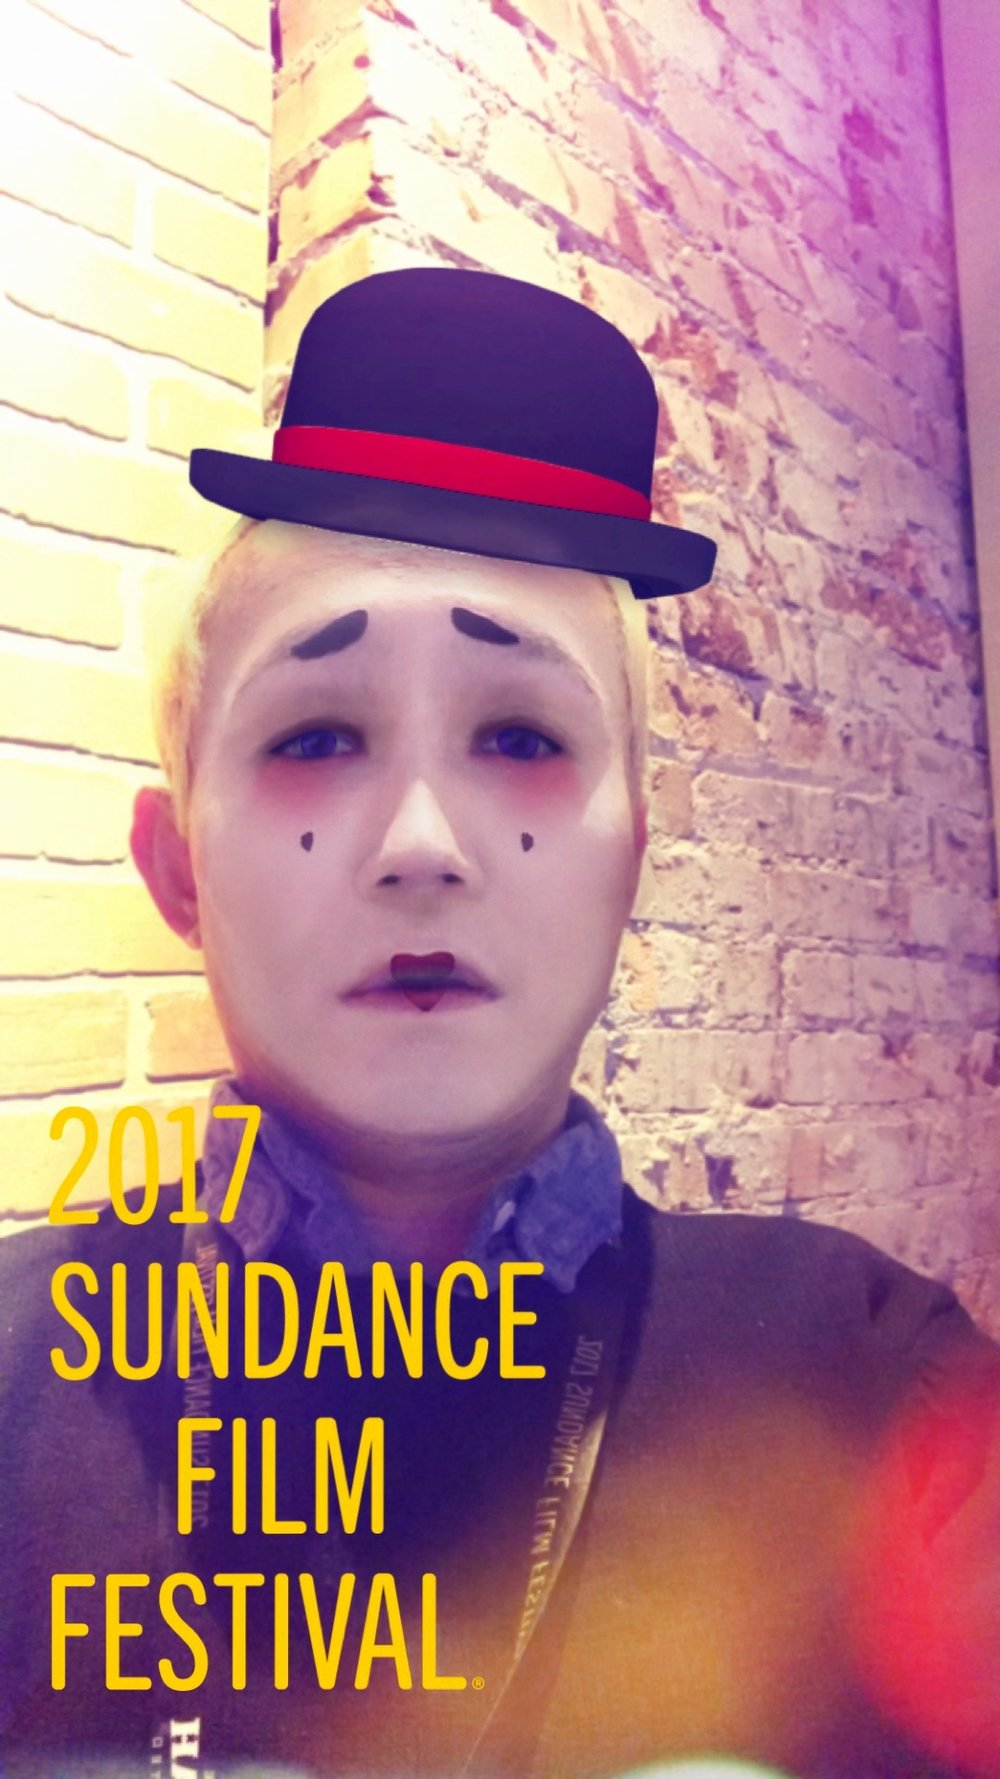 How I felt on my Last Day at Sundance #sadclown #sundance #snapchat